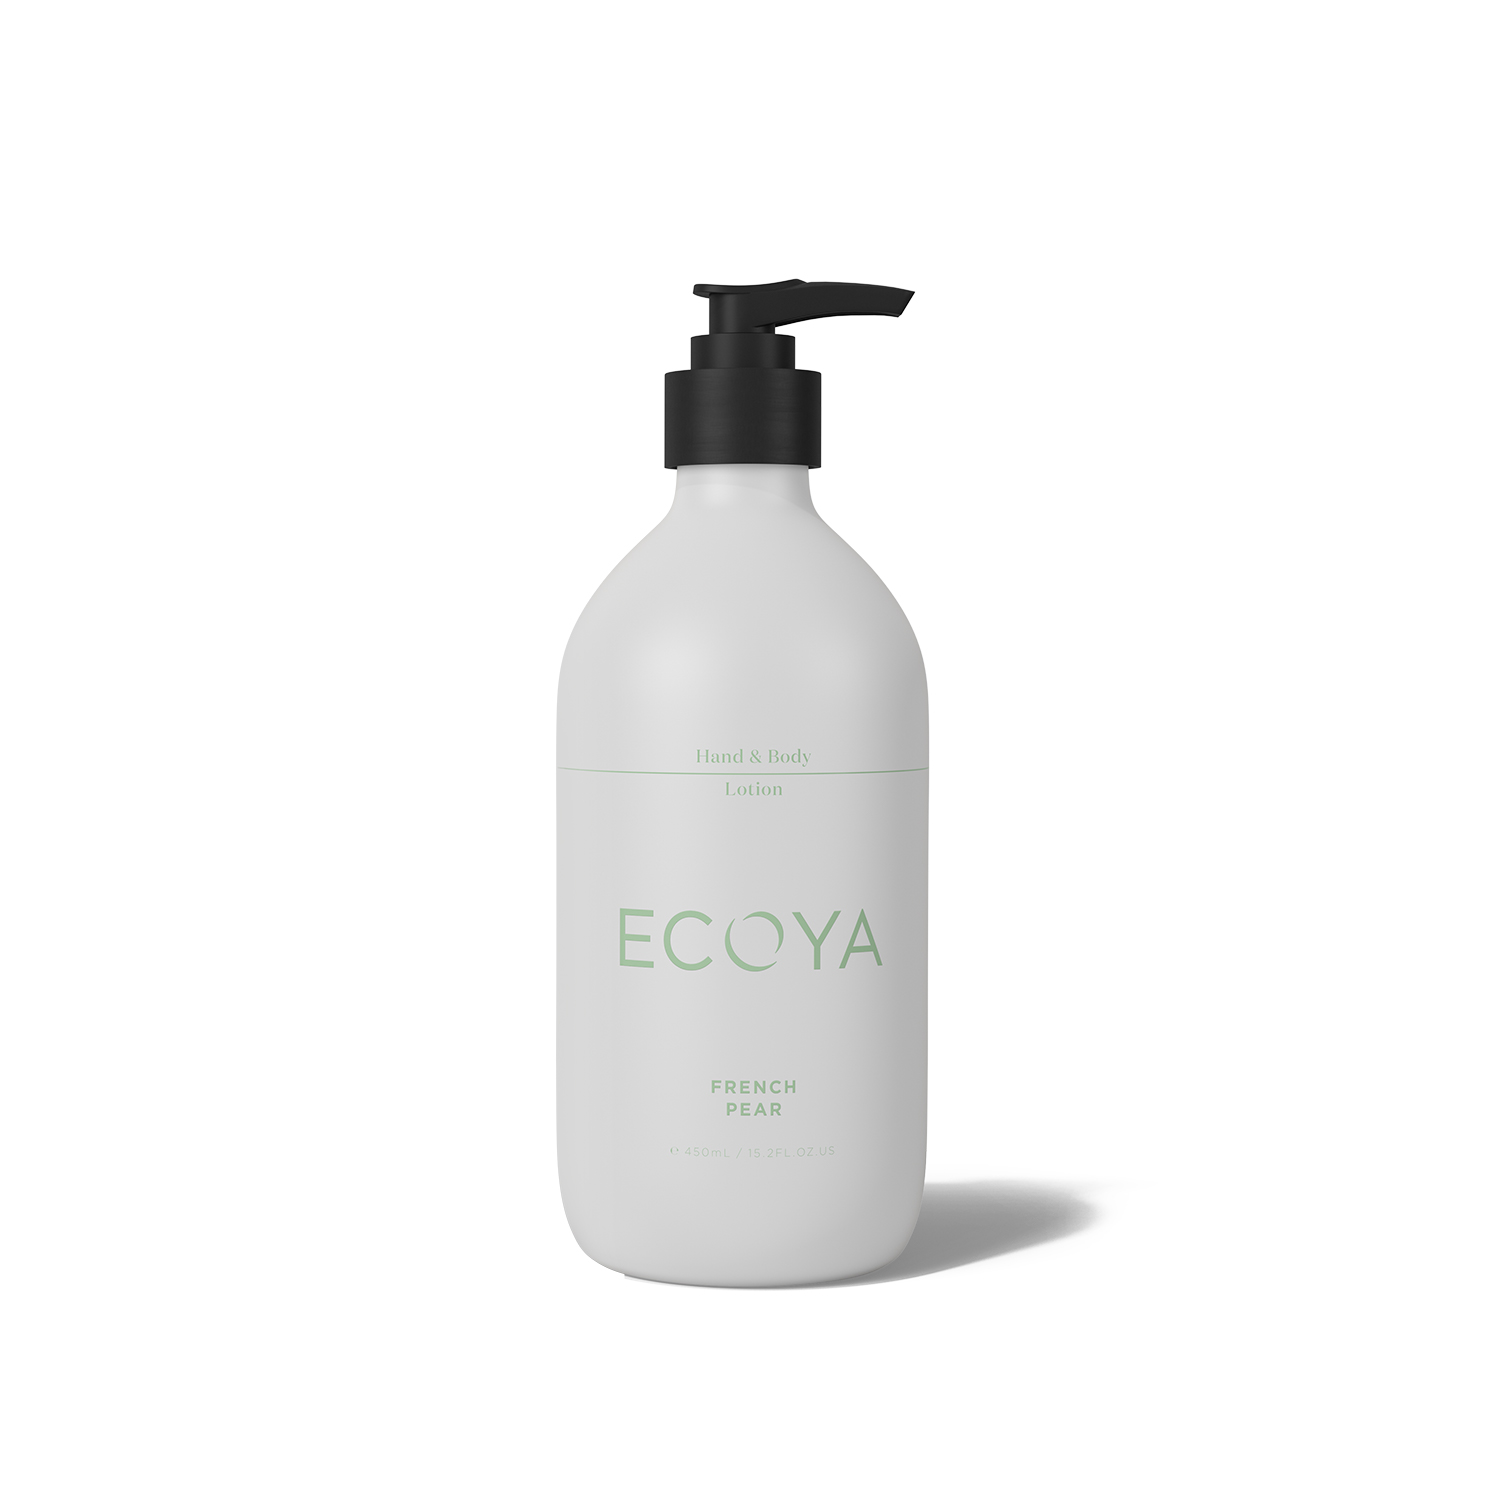 Ecoya French Pear Hand and Body Lotion 15.8oz (450ml)